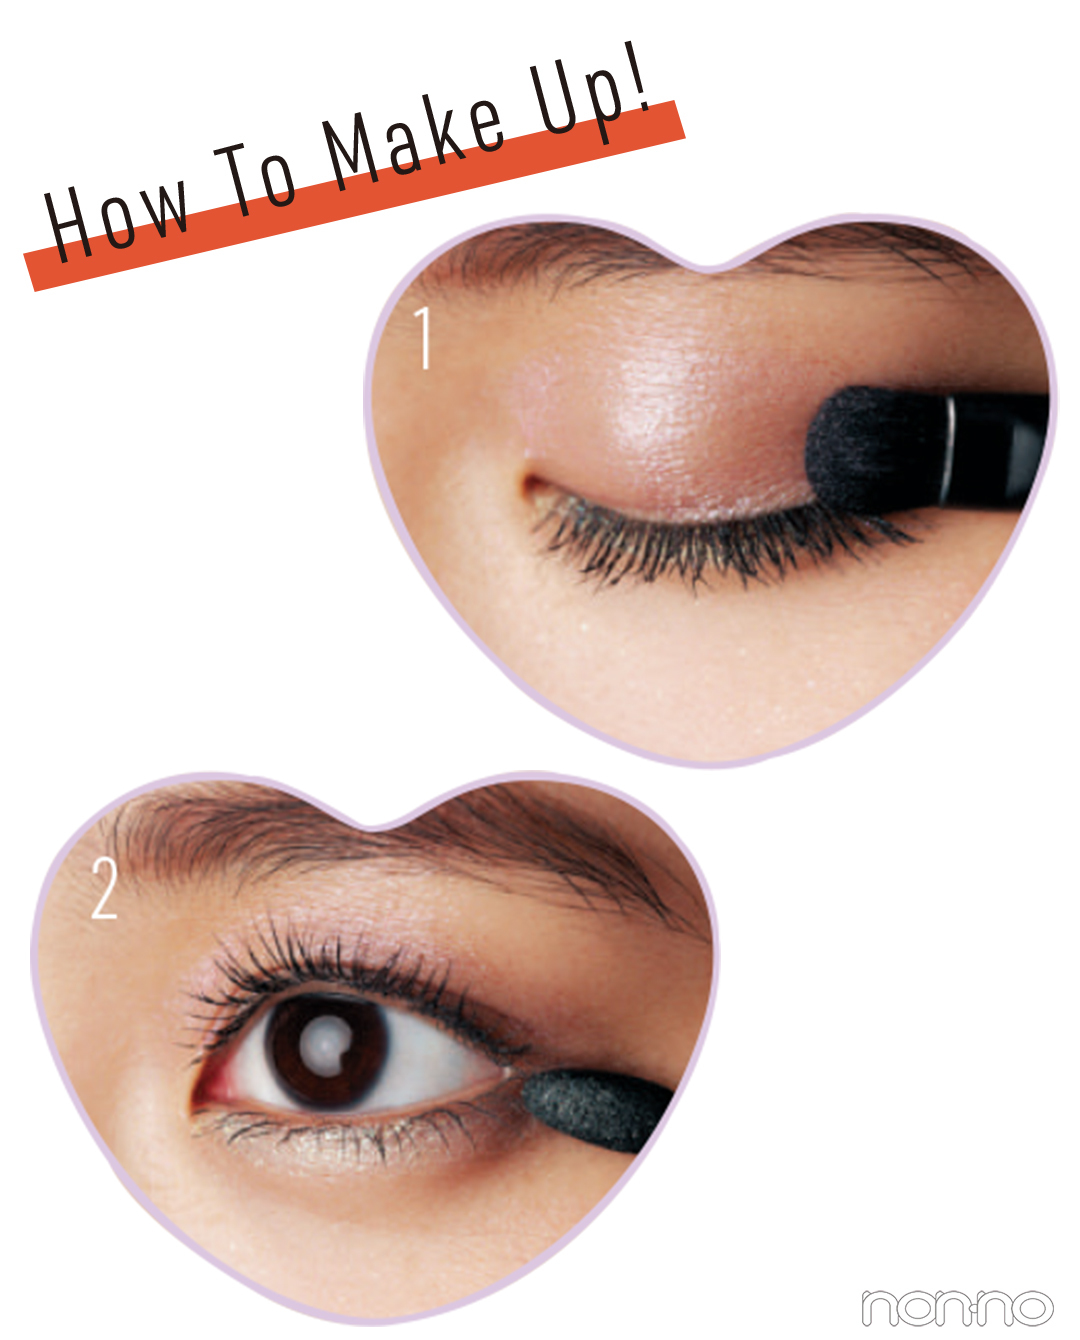 How To Make Up!